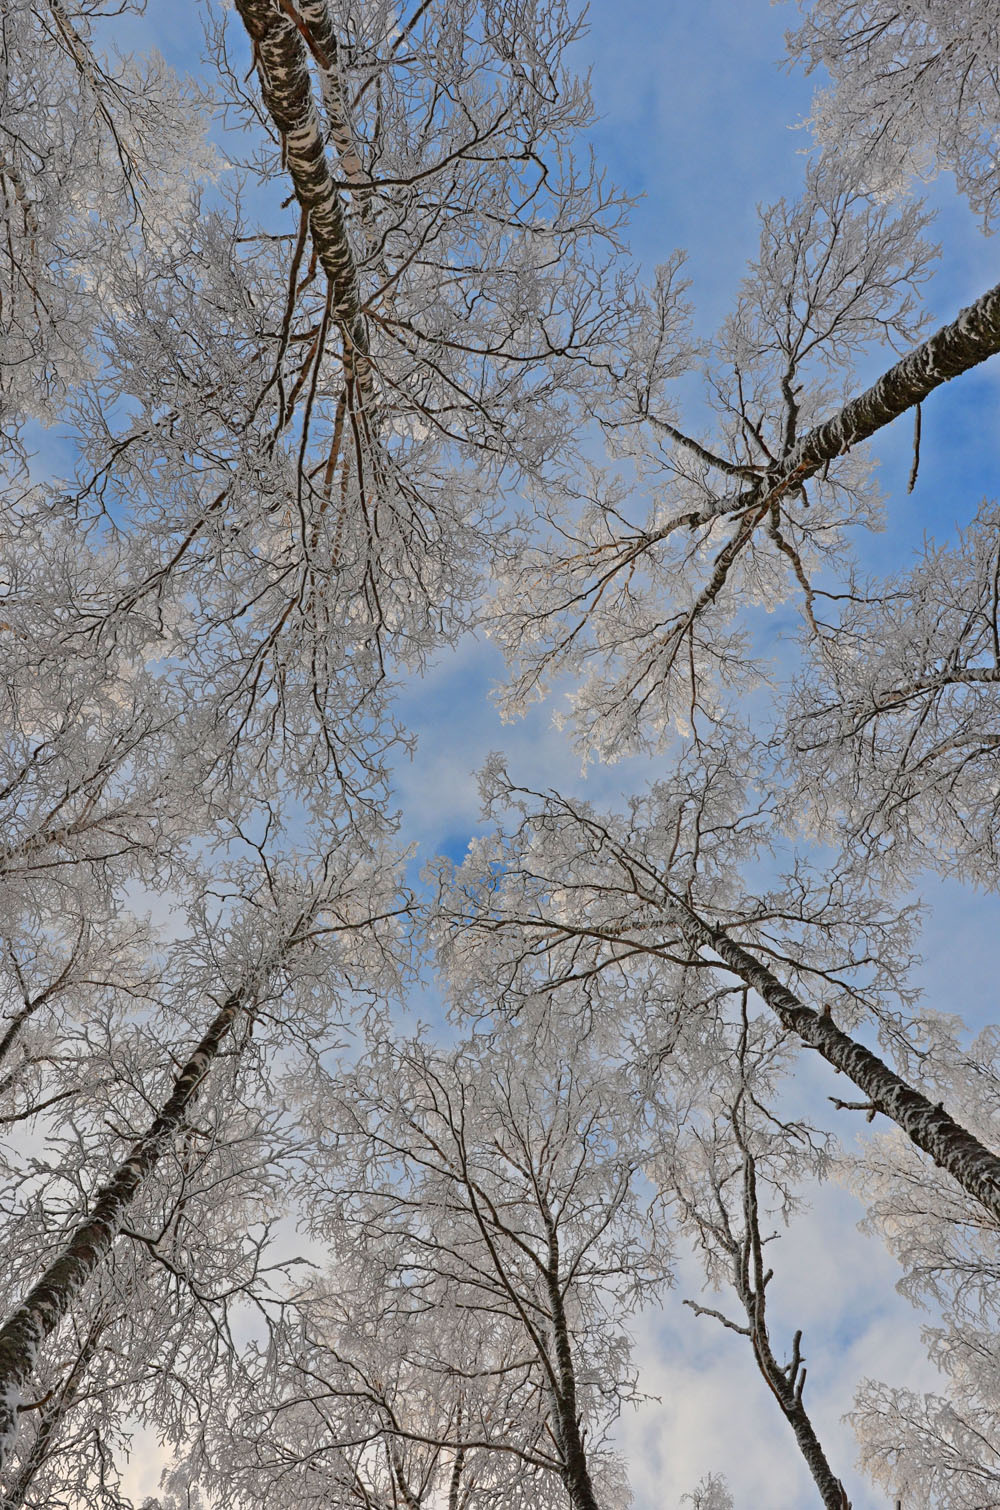 just-be-and-watch-blue-sky-and-snowy-trees